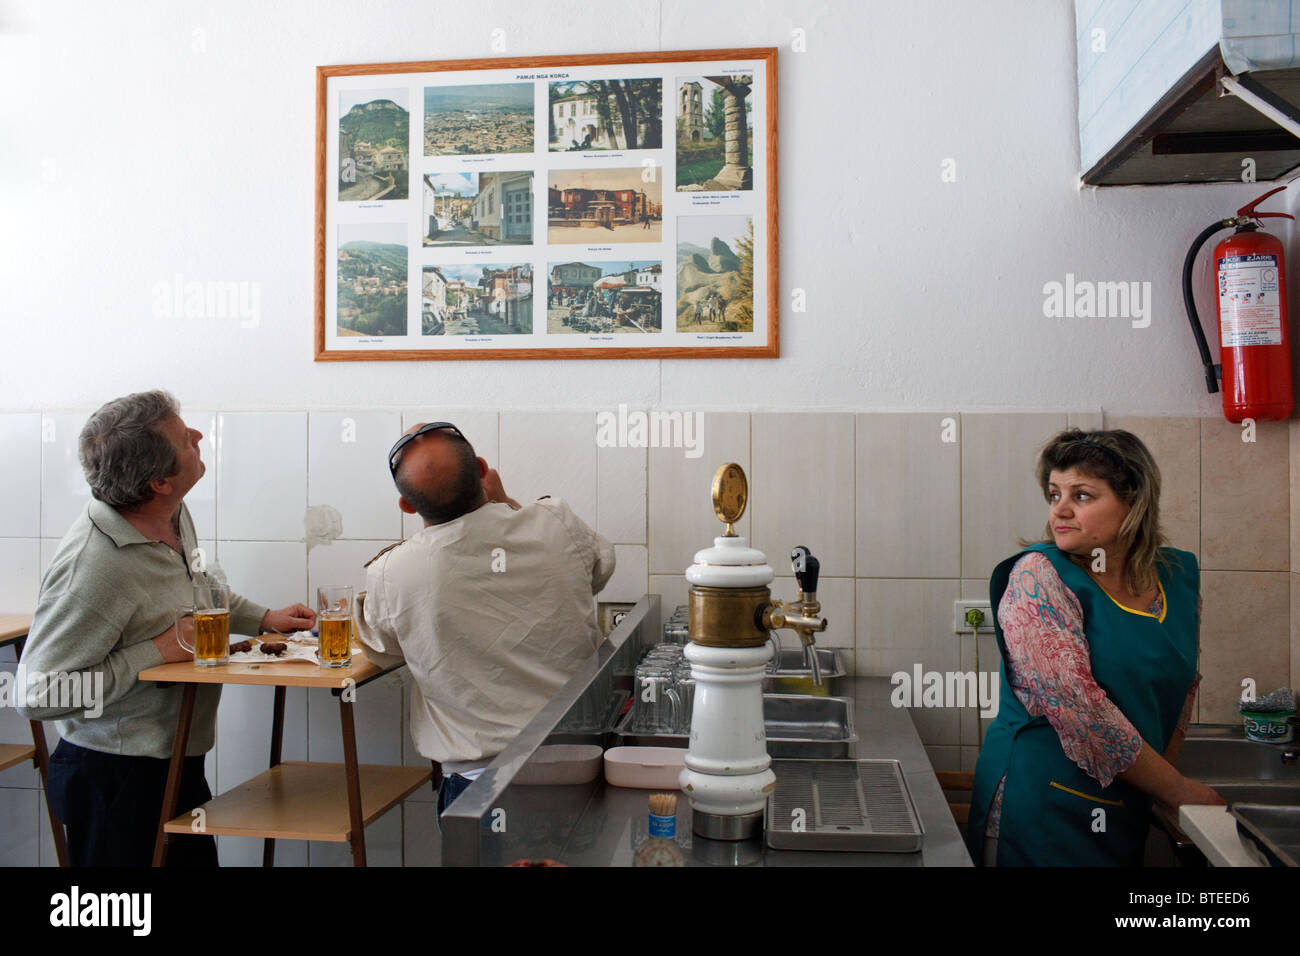 Inside a local bar serving kebabs and beer in Tirana, the capital of Albania. - Stock Image